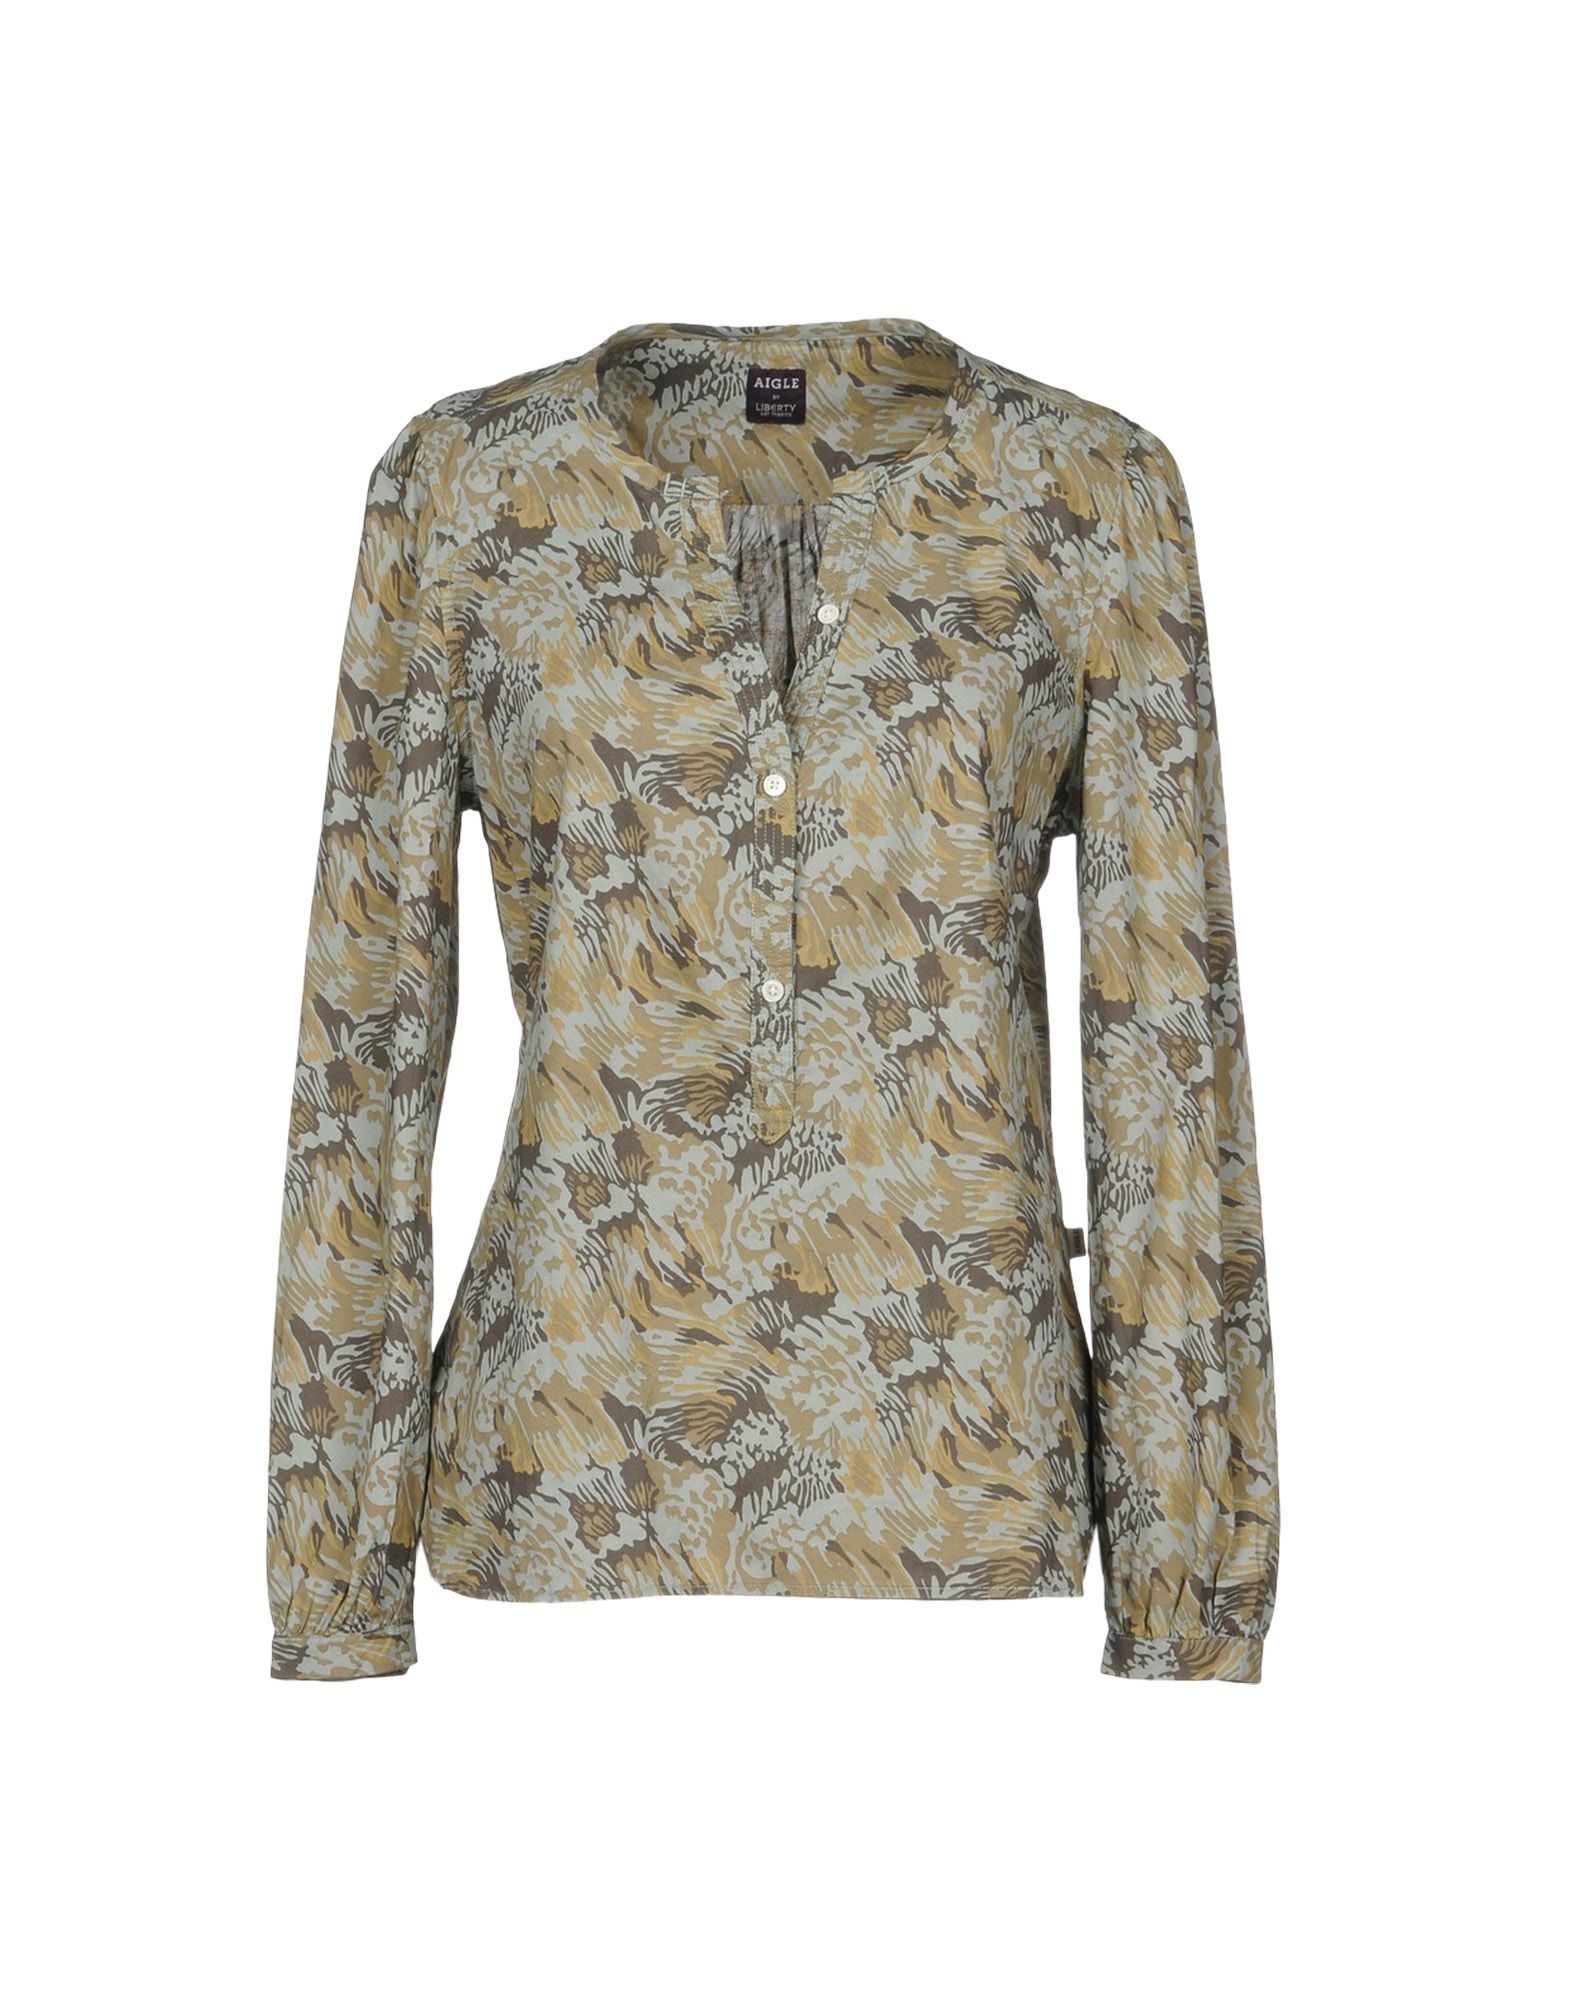 AIGLE Patterned Shirts & Blouses in Military Green